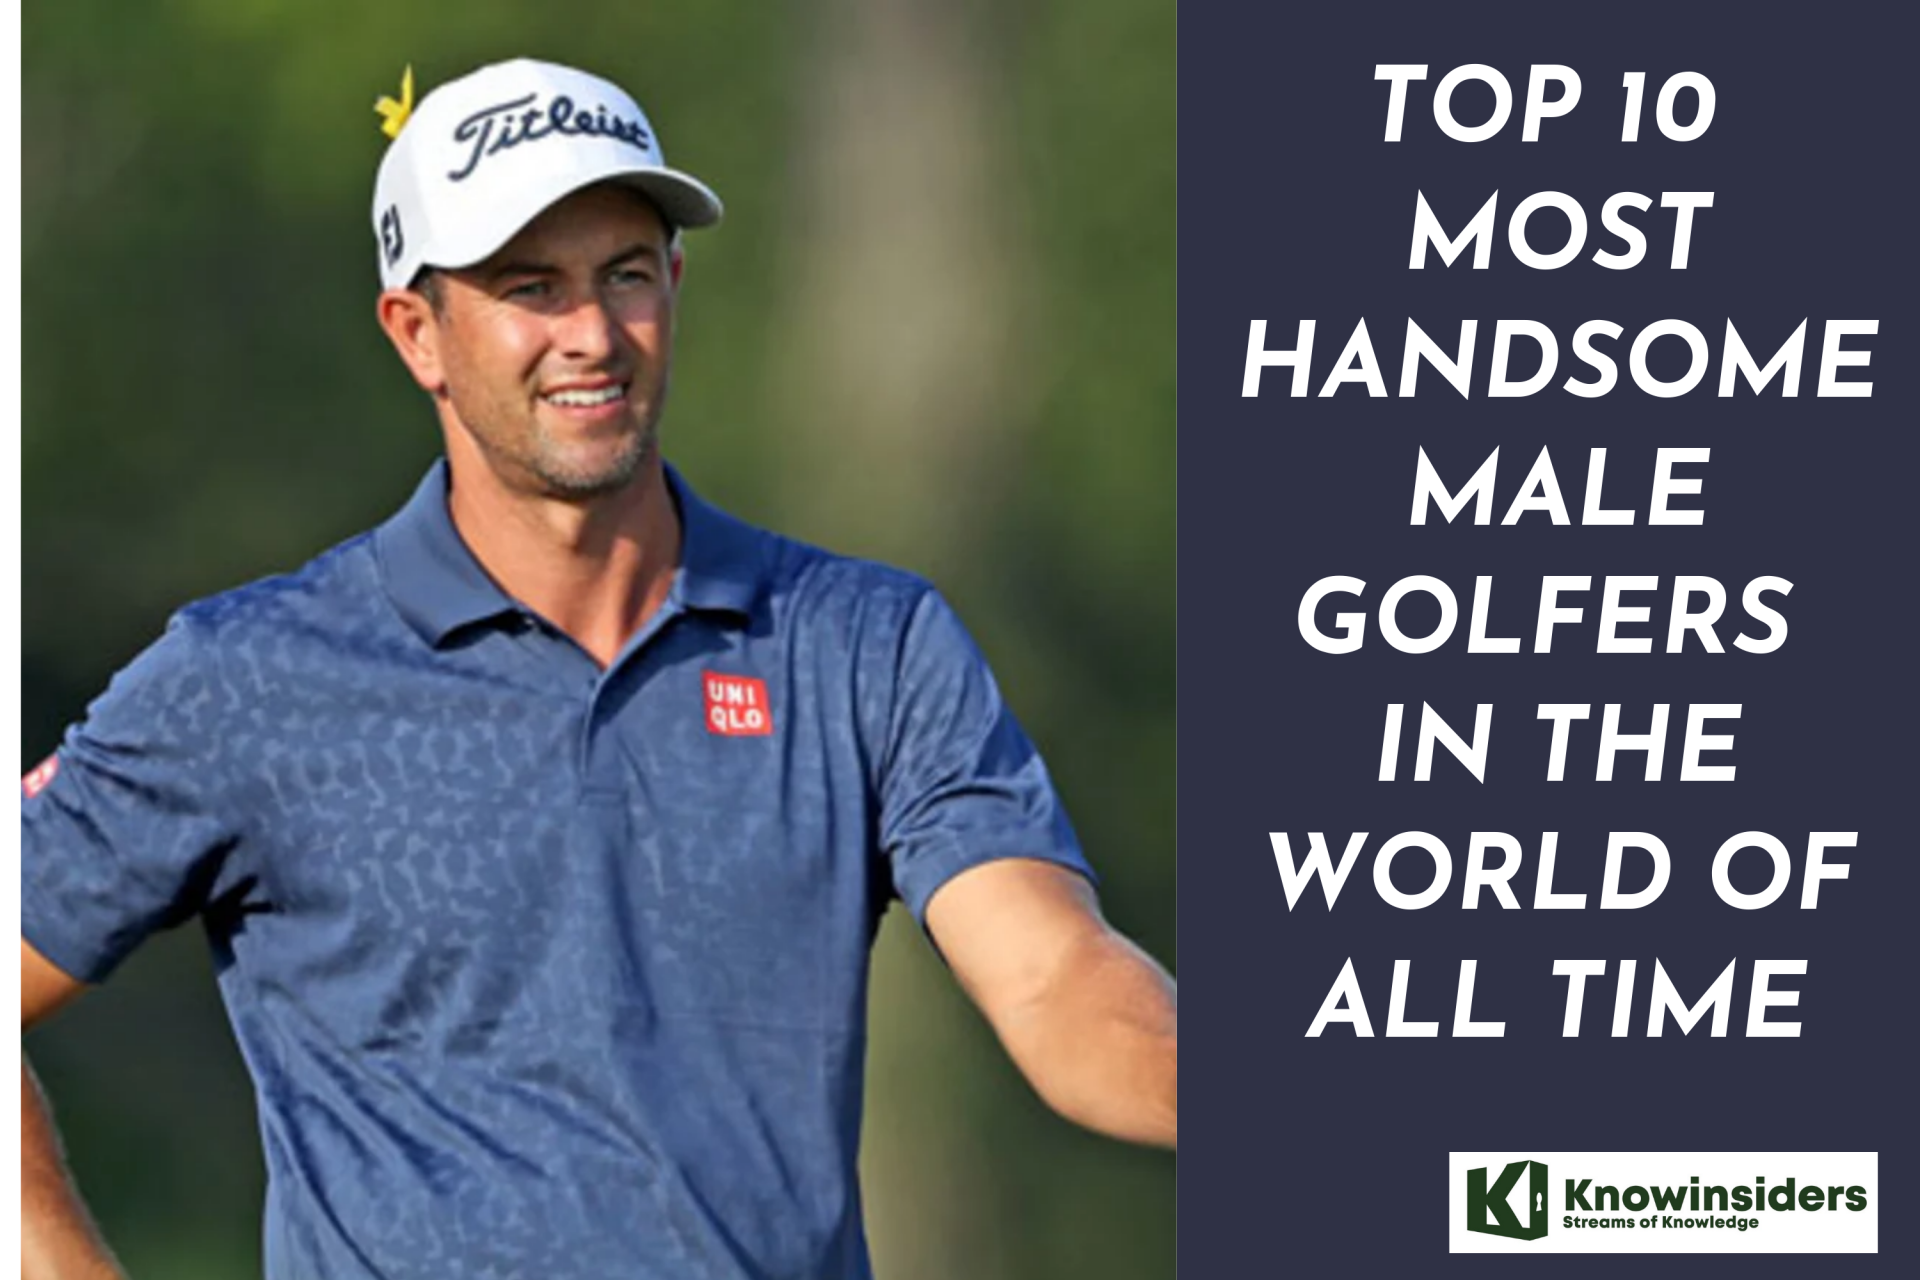 Top 10 Most Handsome Male Golfers in the World of All Time